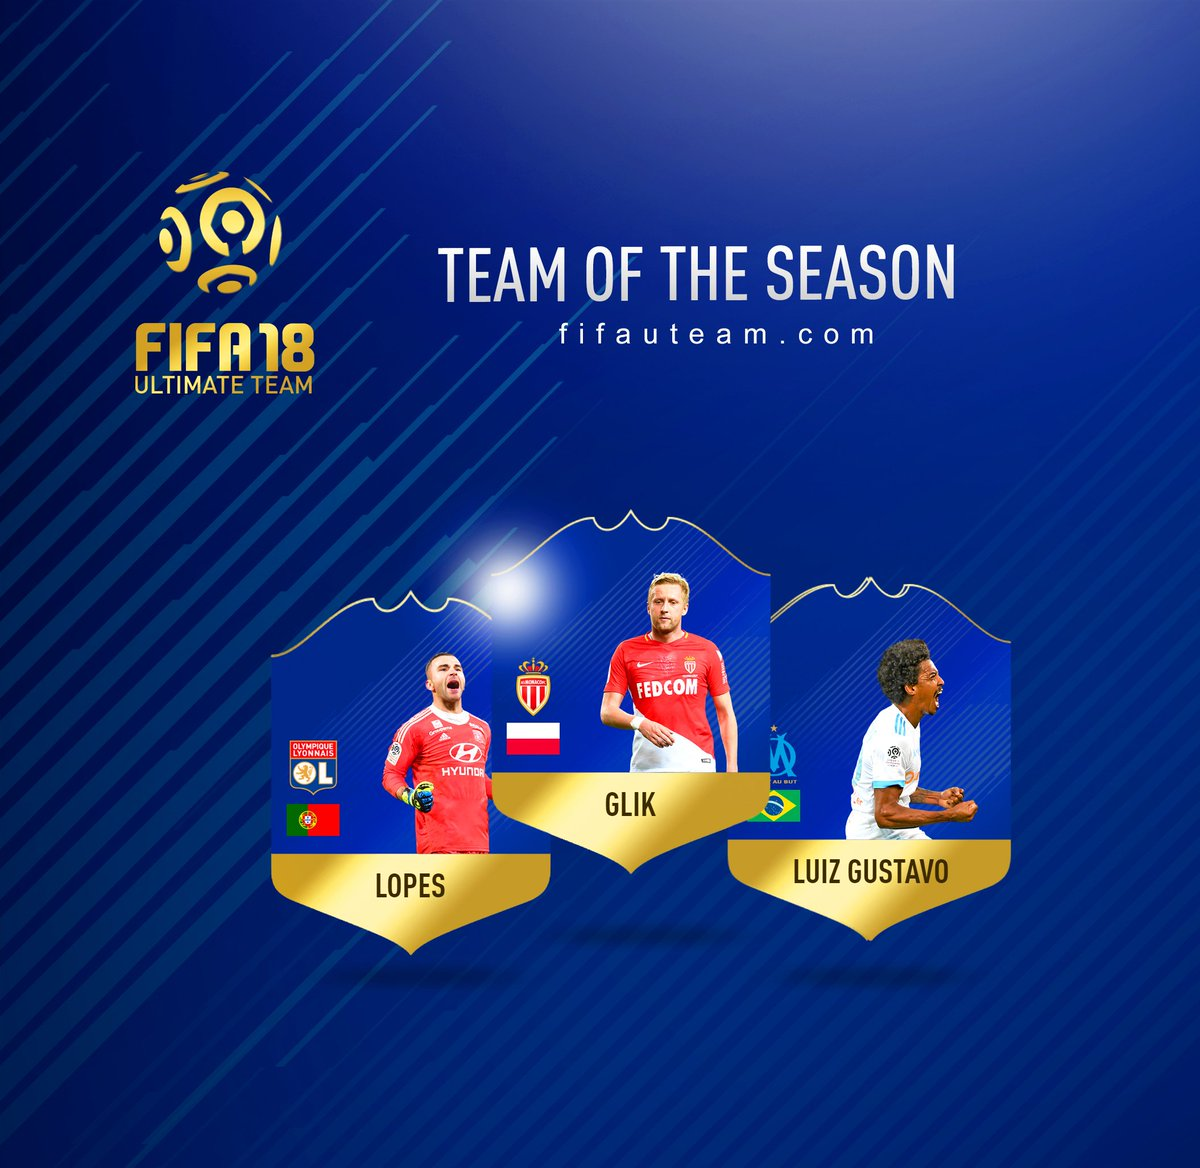 Two new #TOTS squads today! #FIFA18 🇫🇷 Ligue 1: https://t.co/5BfLjQEfA8  🇮🇹 Calcio A: https://t.co/KQlZpQQ5zG https://t.co/JRILUII5Ne